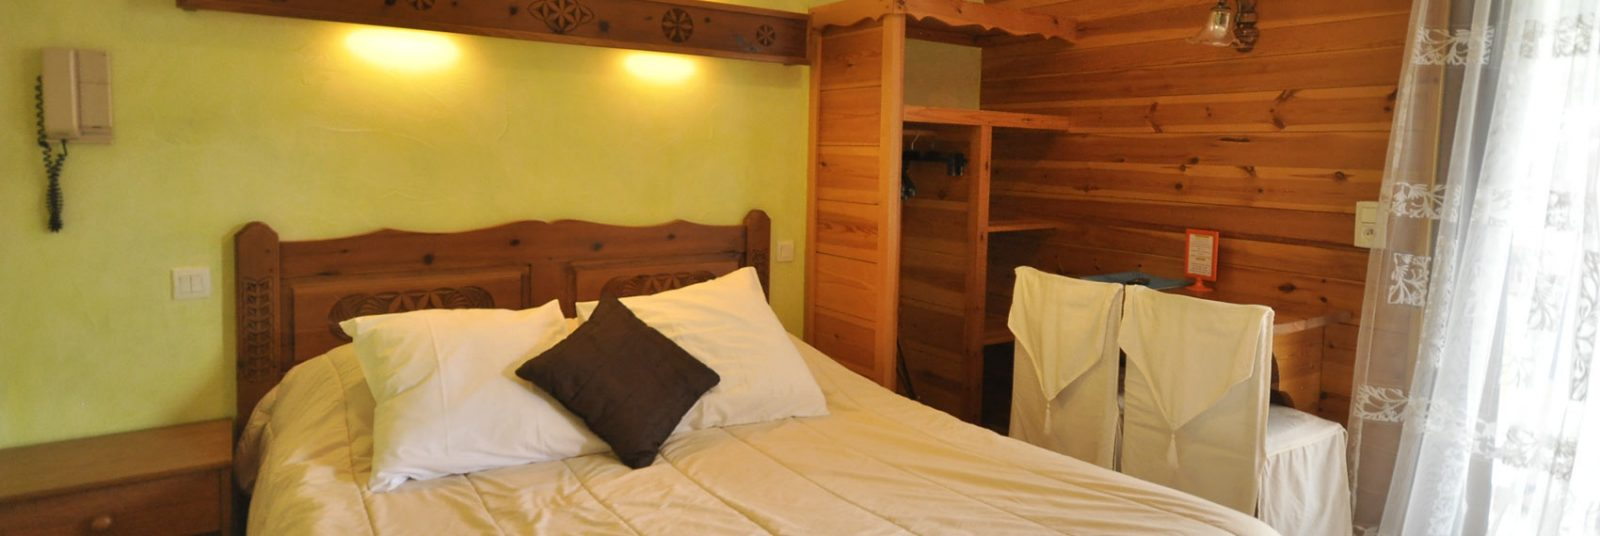 Double bedroom at the Aigliere hotel